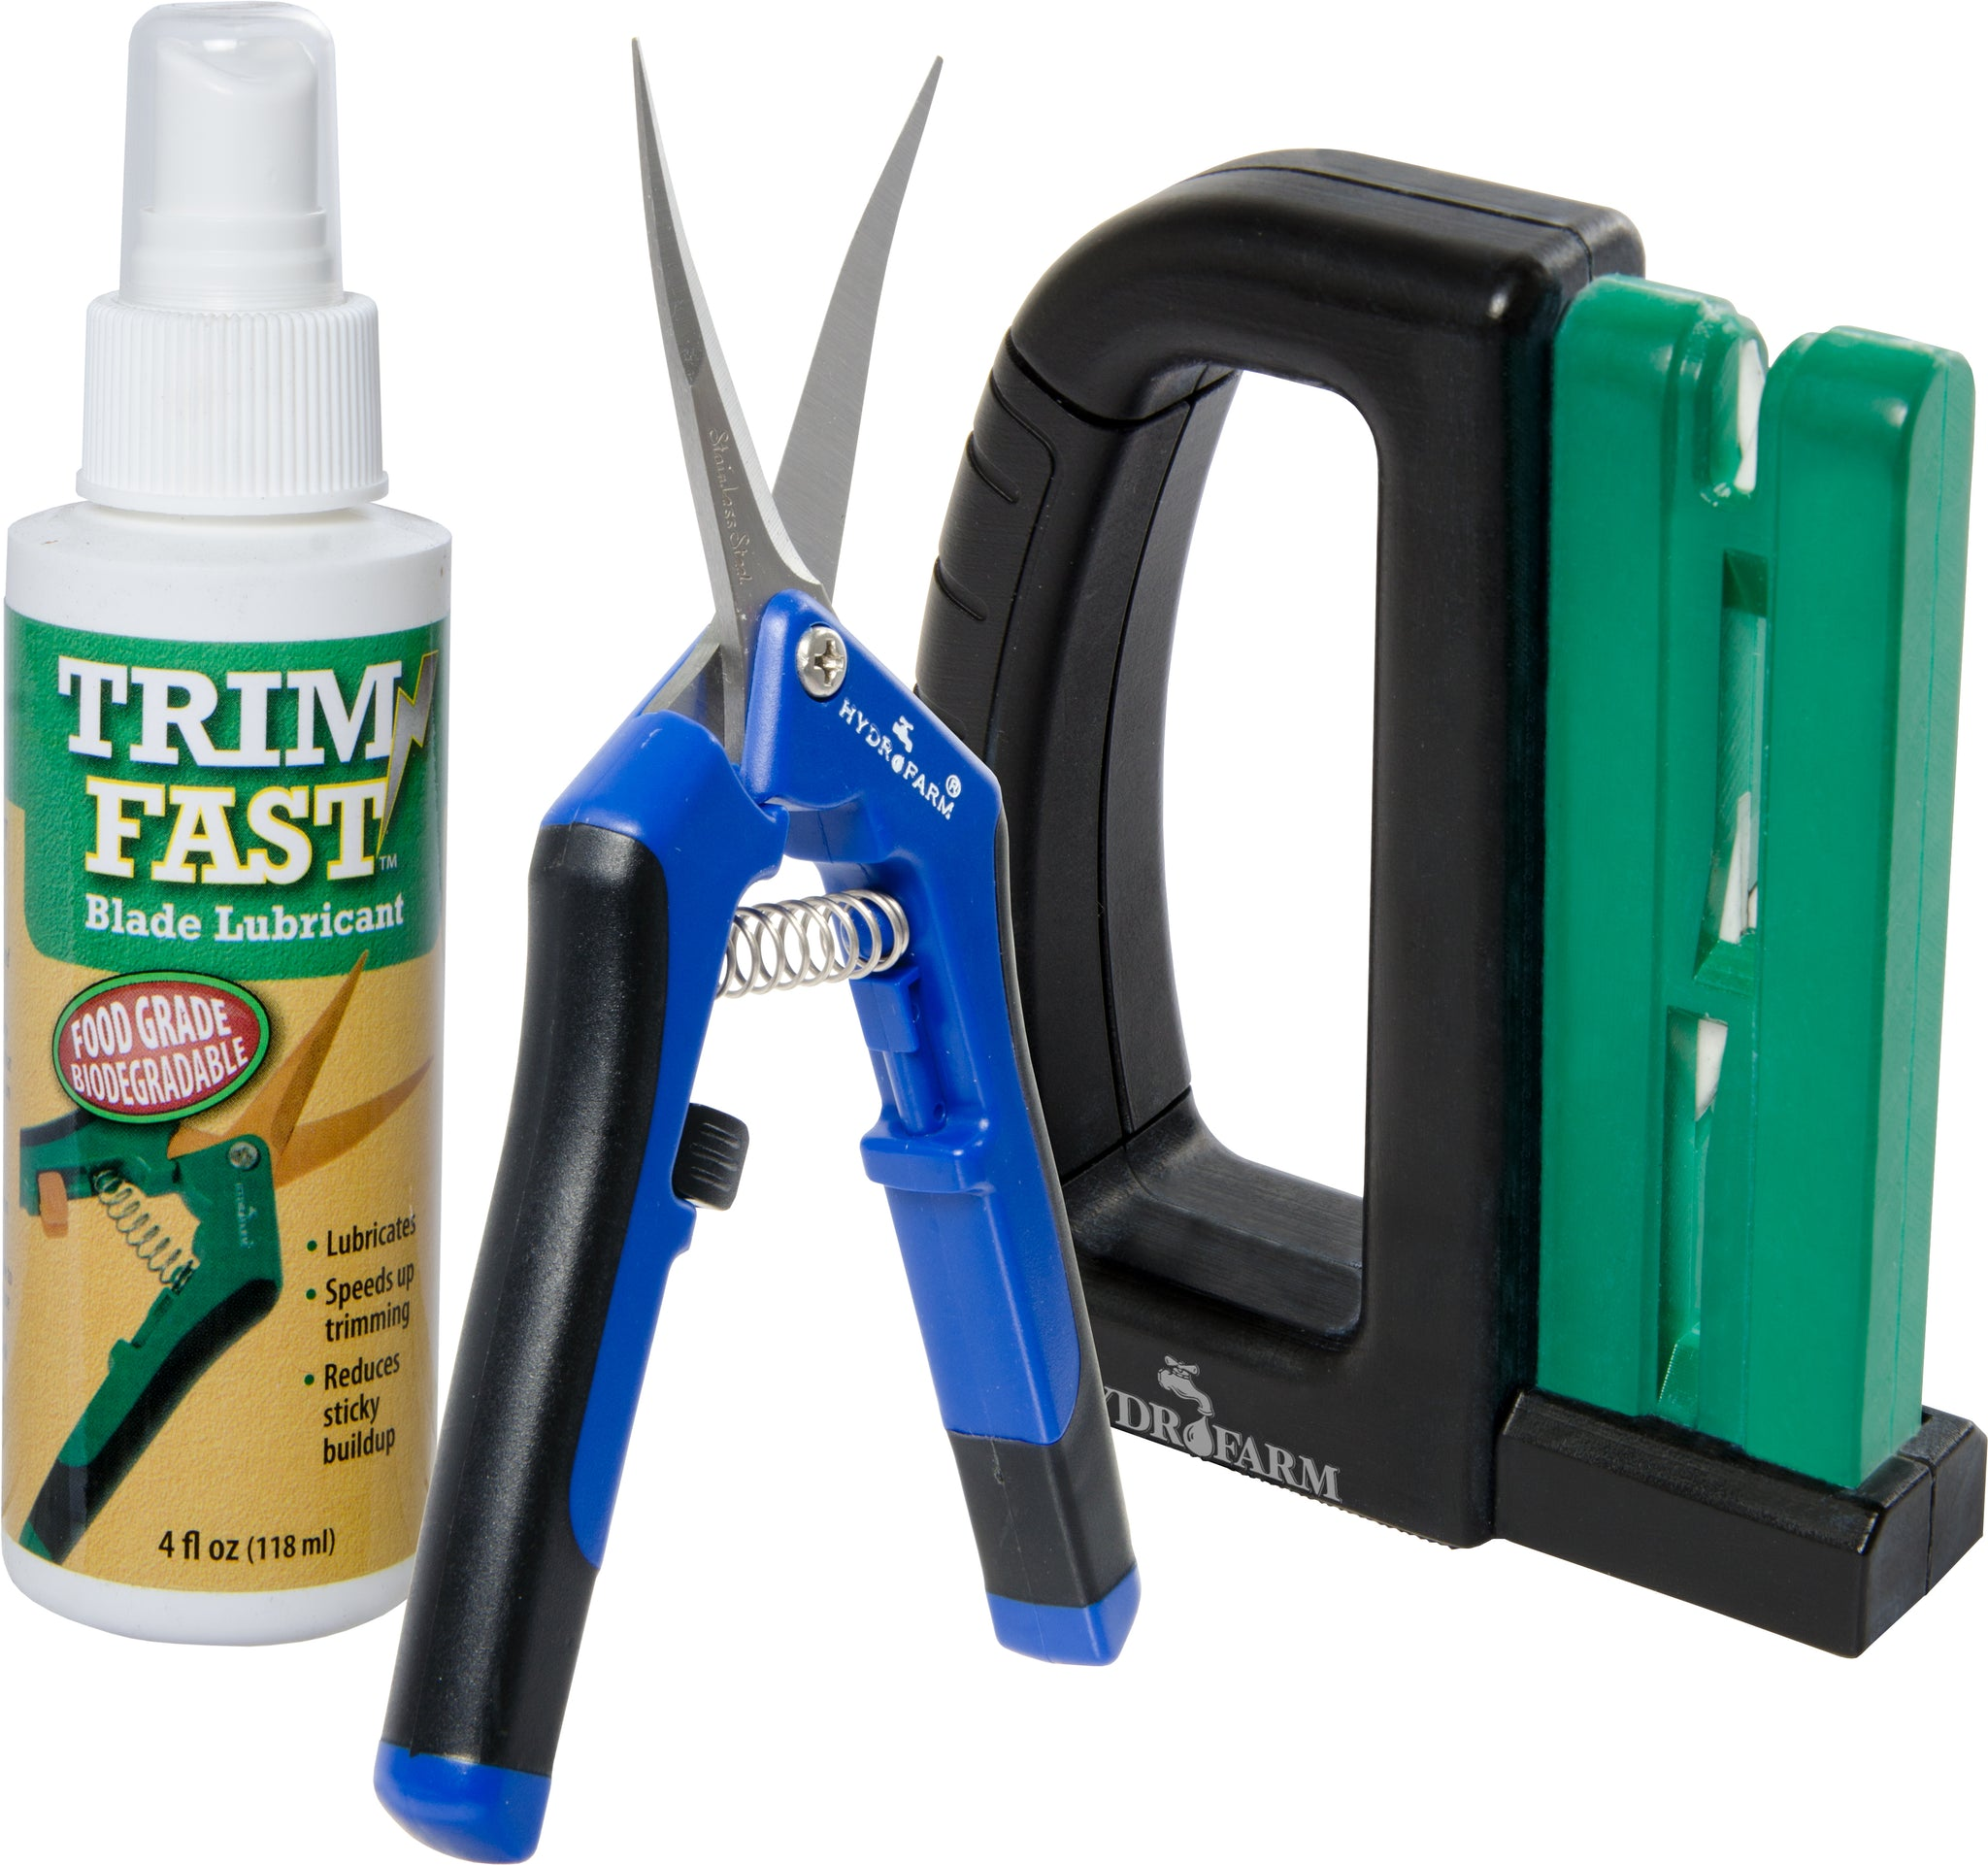 Professional Trimmer Pack w/ 12 Curved Blade Pruners